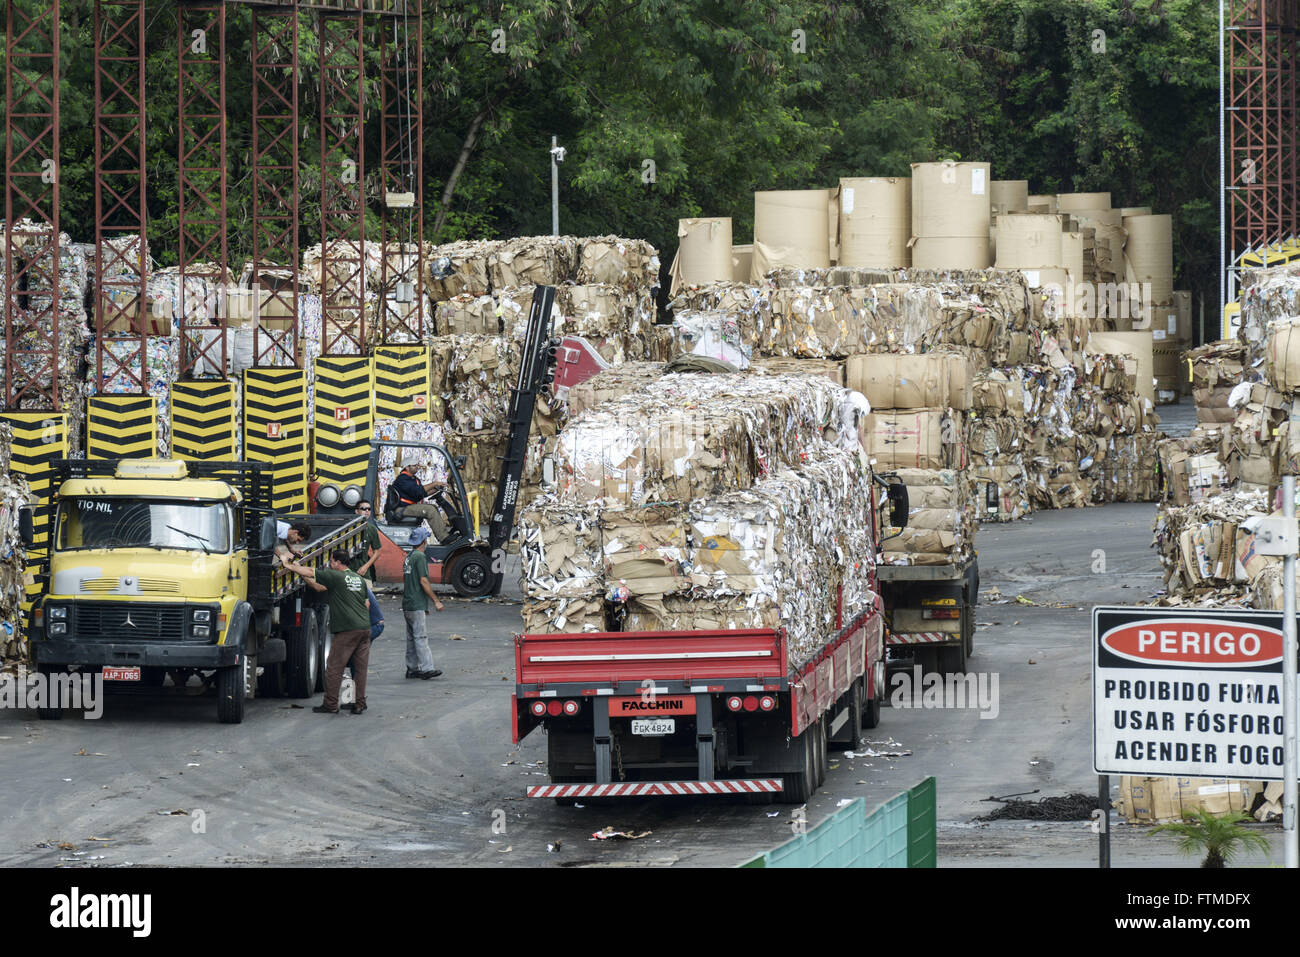 Trucks with bales of recyclable material that will be transformed into wrapping paper - Stock Image